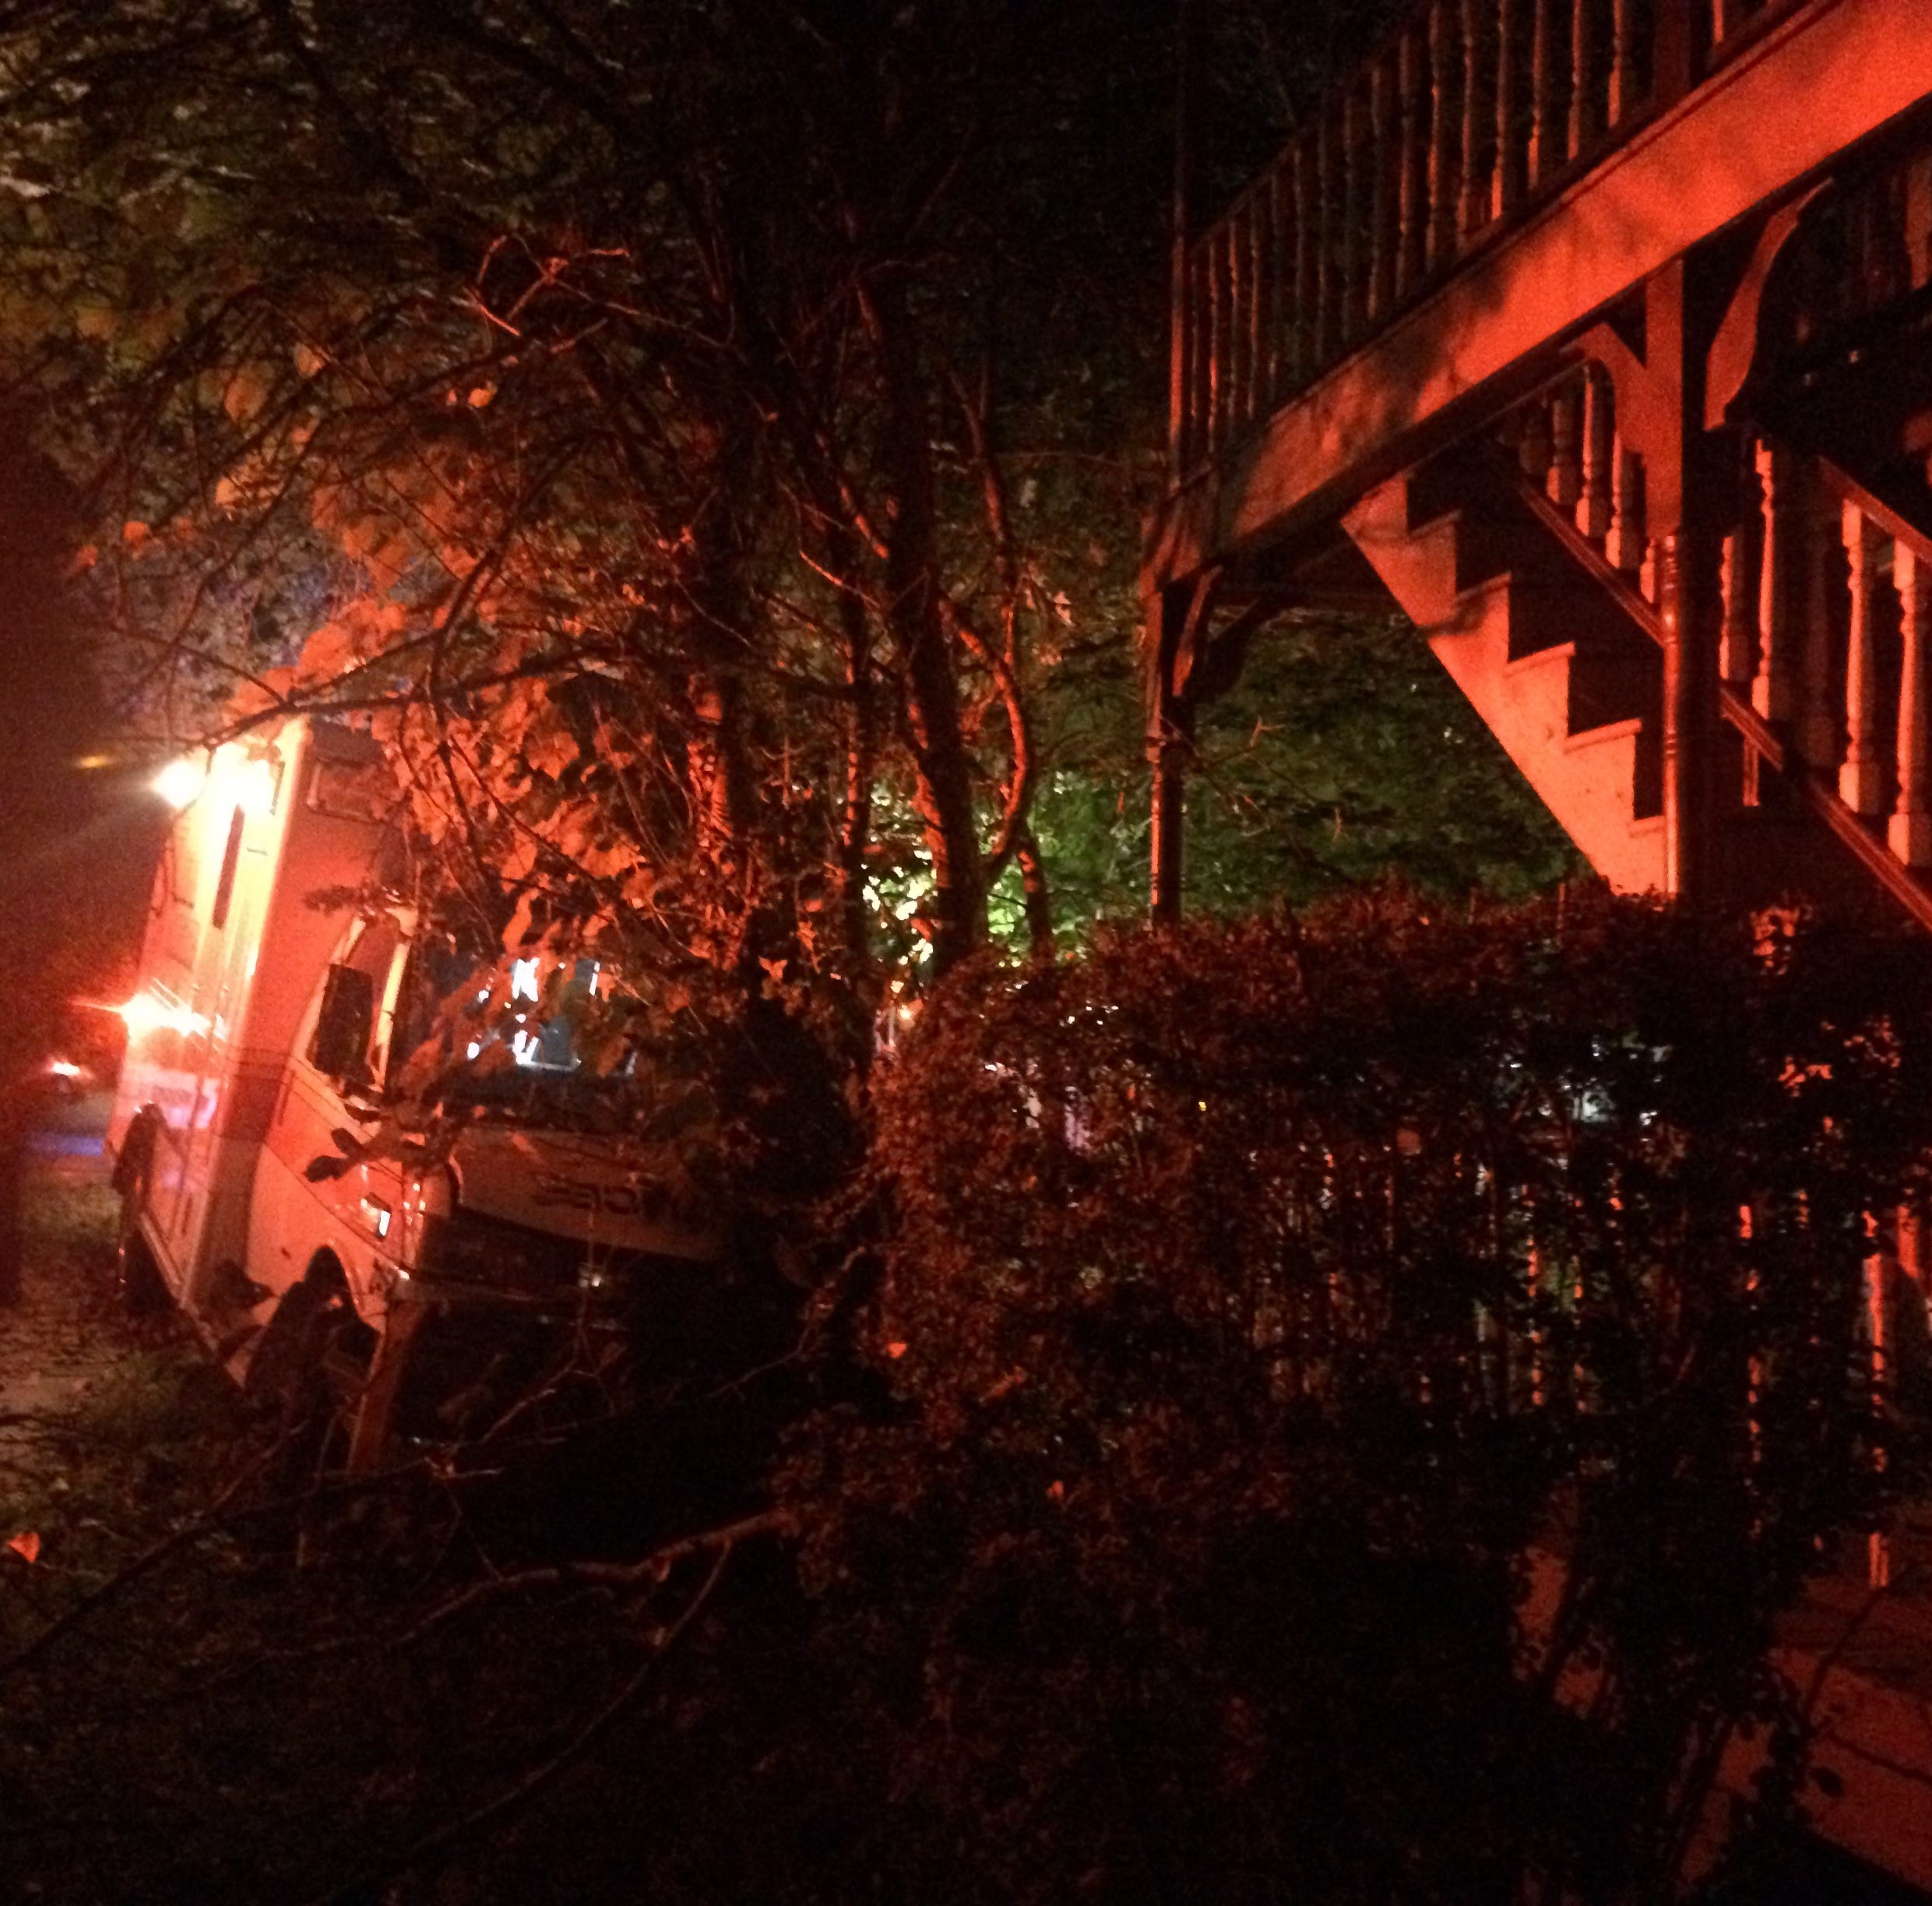 Ambulance crashes into a tree in the City of Poughkeepsie